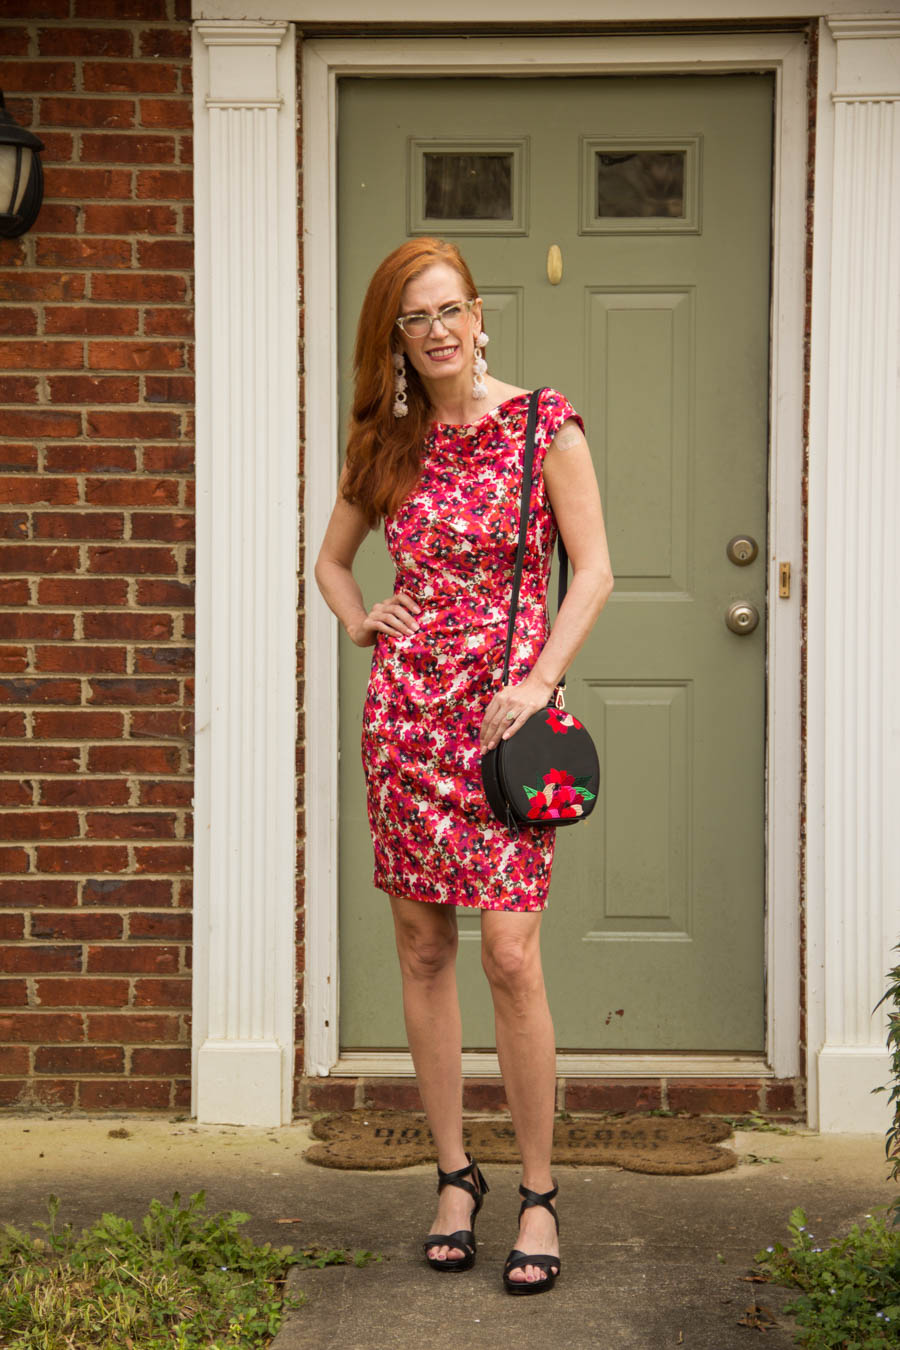 Jessica Jamenga aka Jess mixing floral with floral